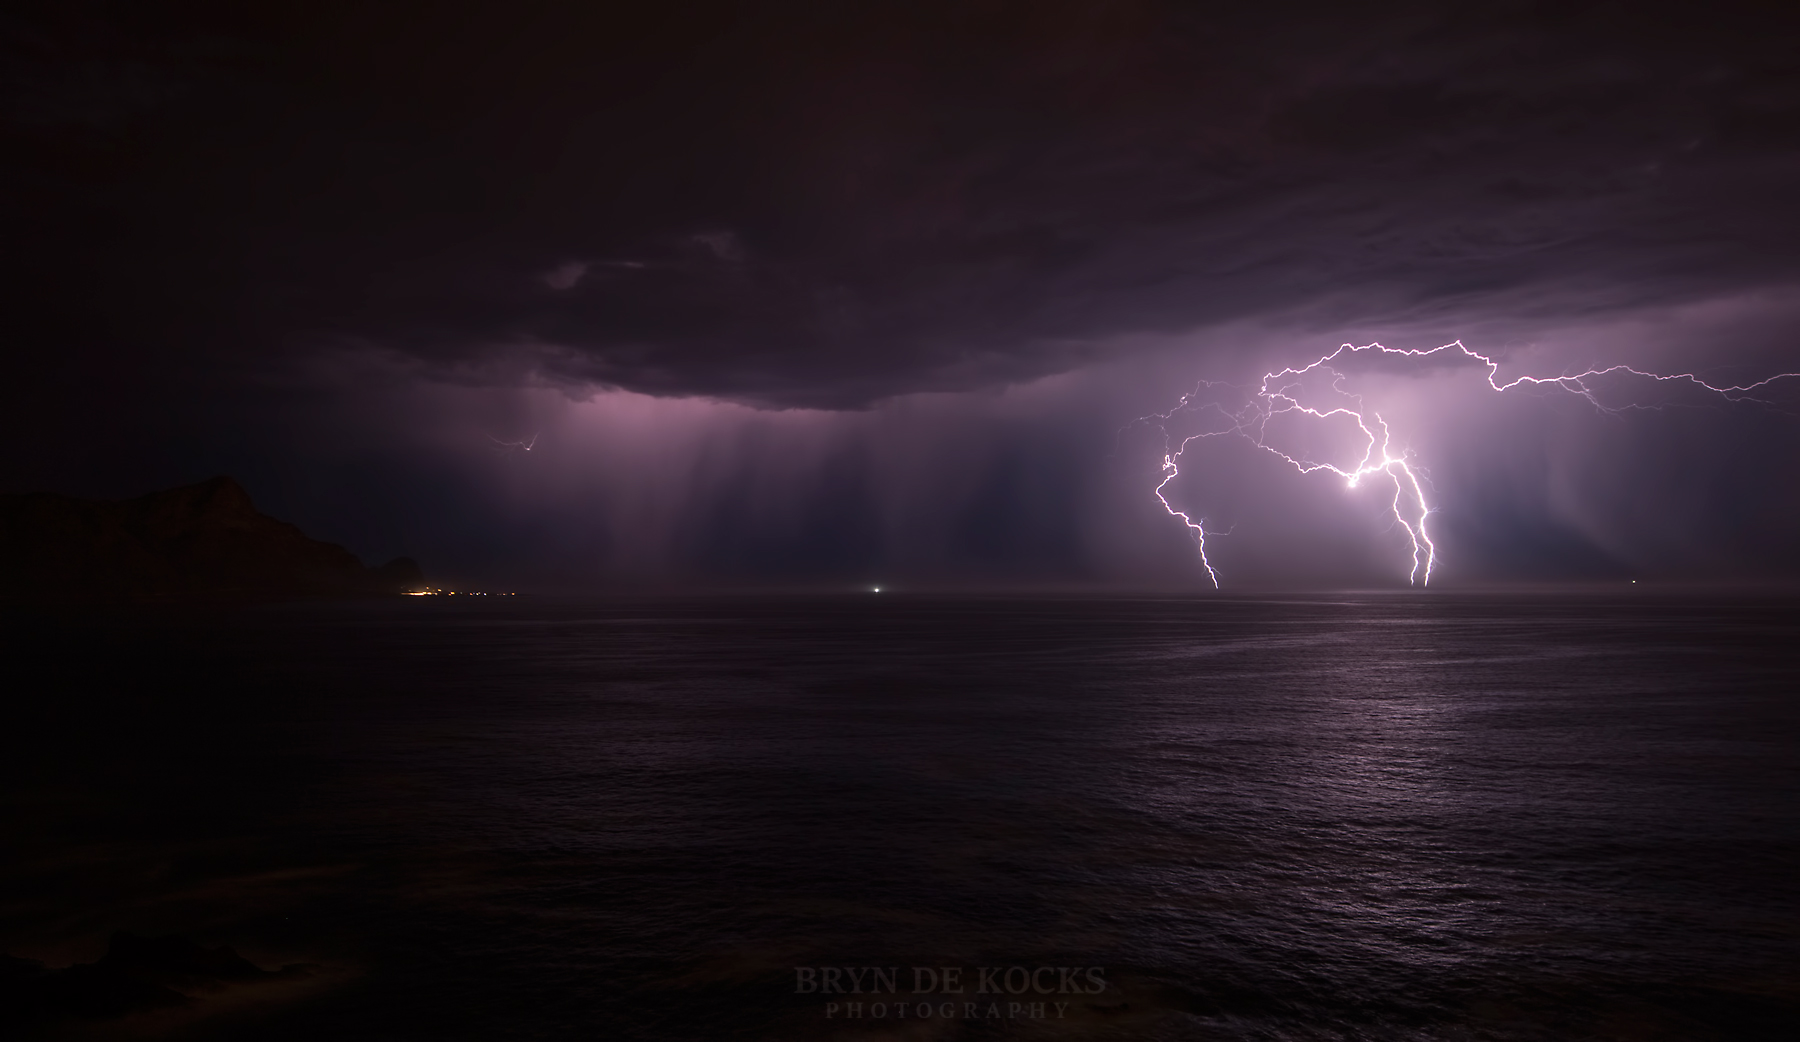 lightening strikes over the ocean